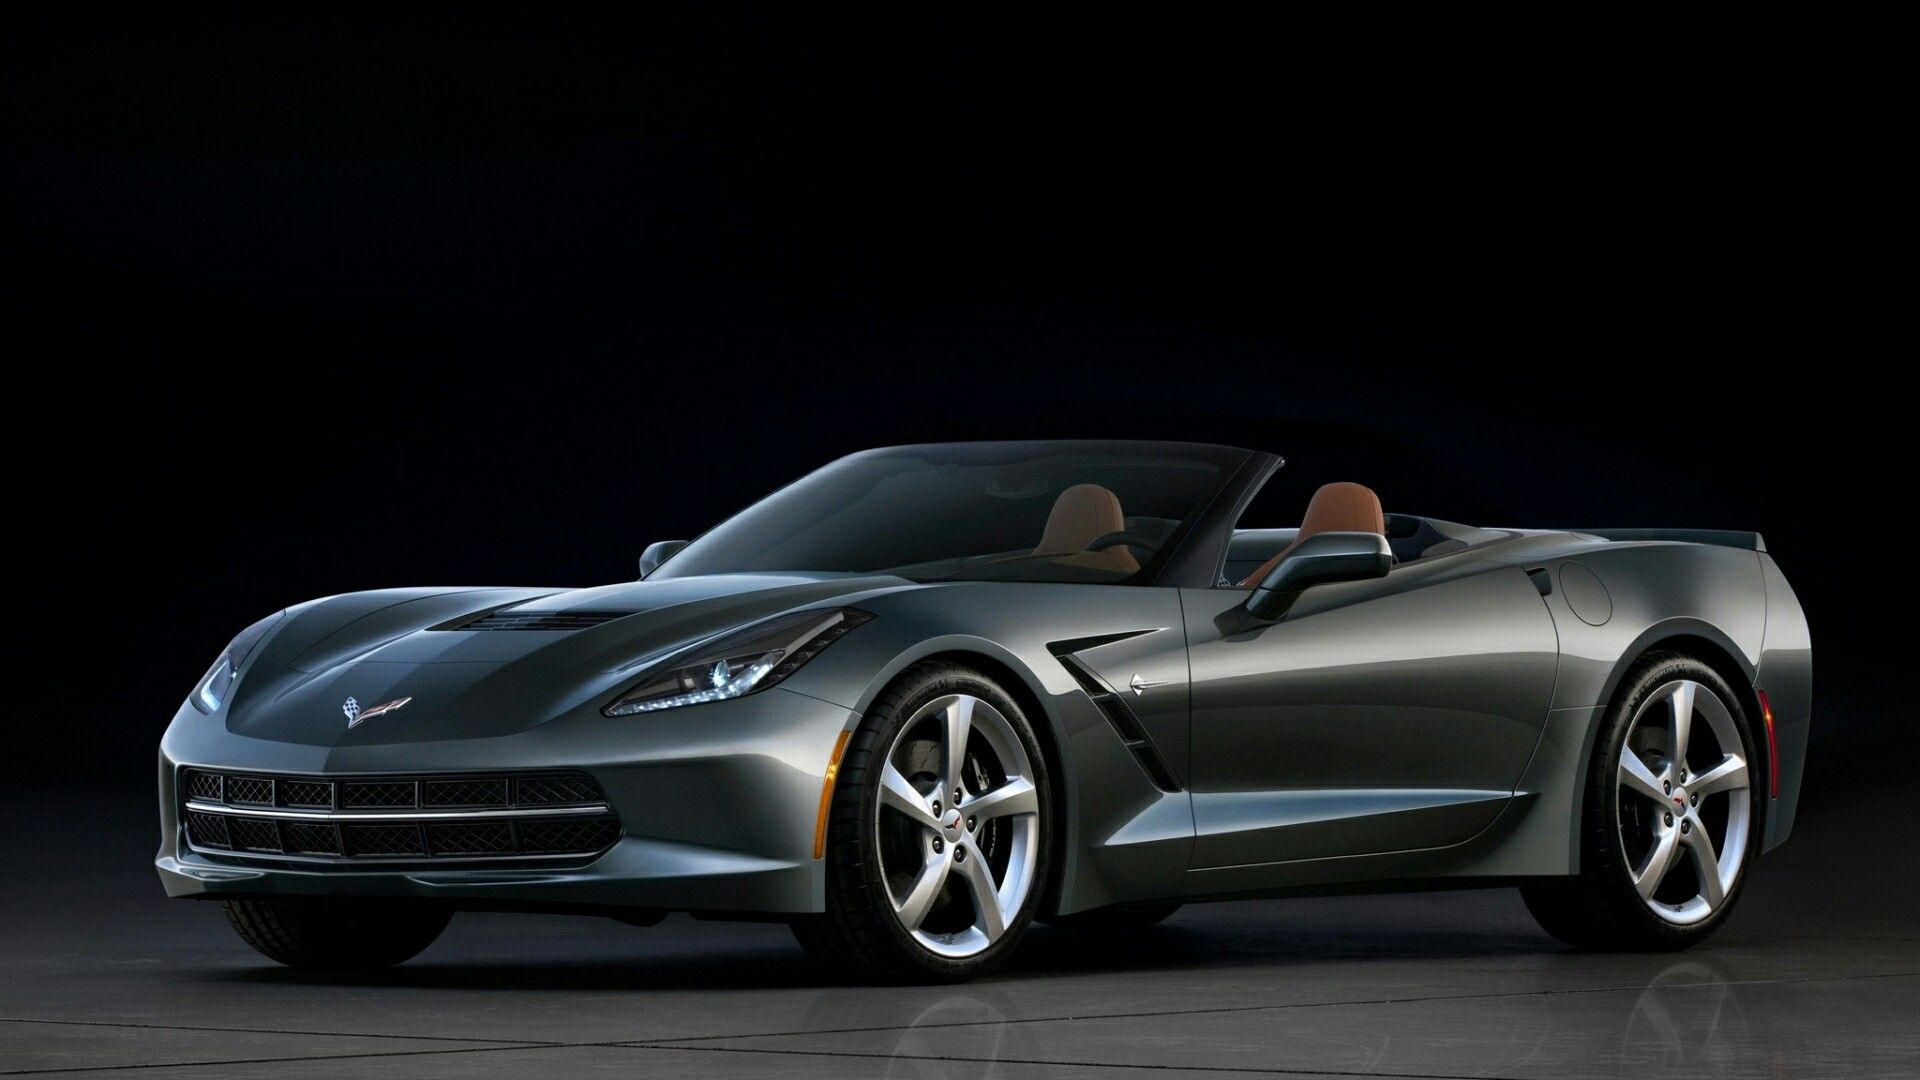 Pin by Aman Semwal on Car lovers. Corvette stingray